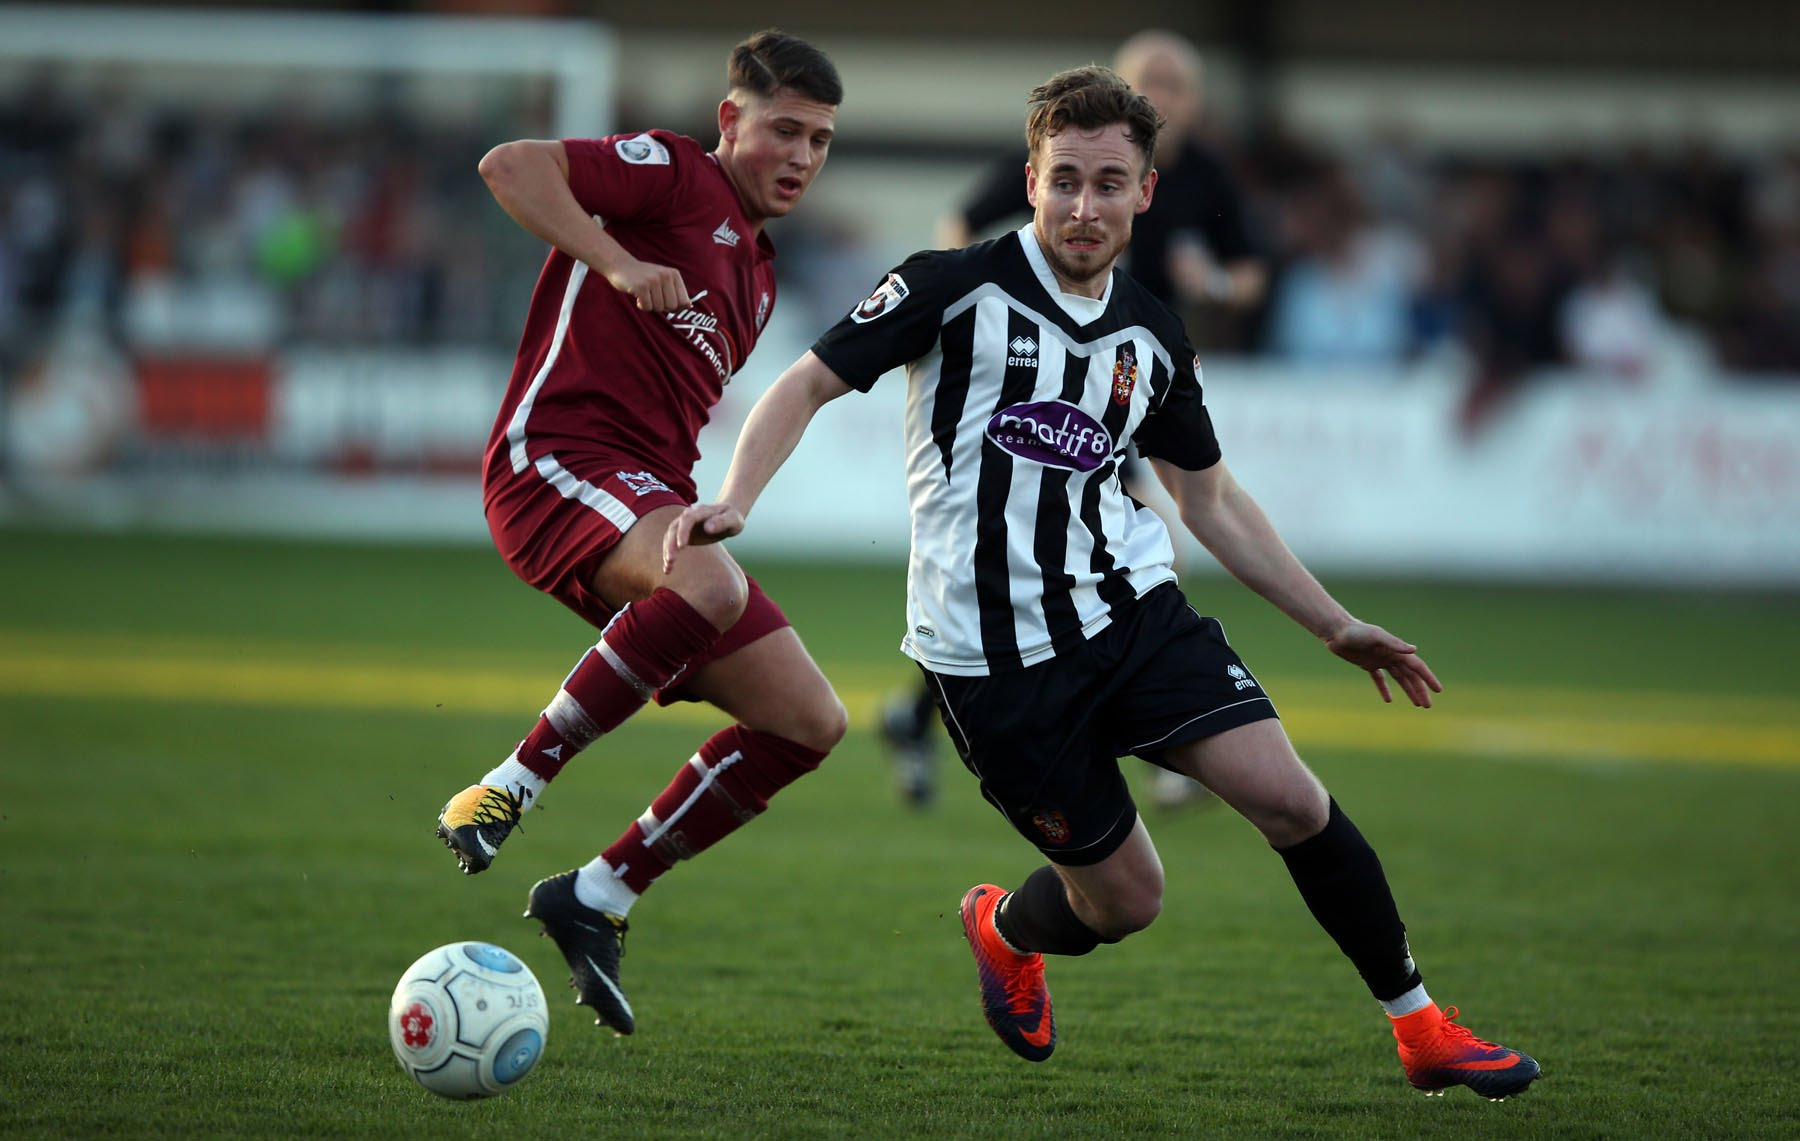 Mark Anderson of Spennymoor Town and Josef Wheatley of Darlington. Picture: CHRIS BOOTH.